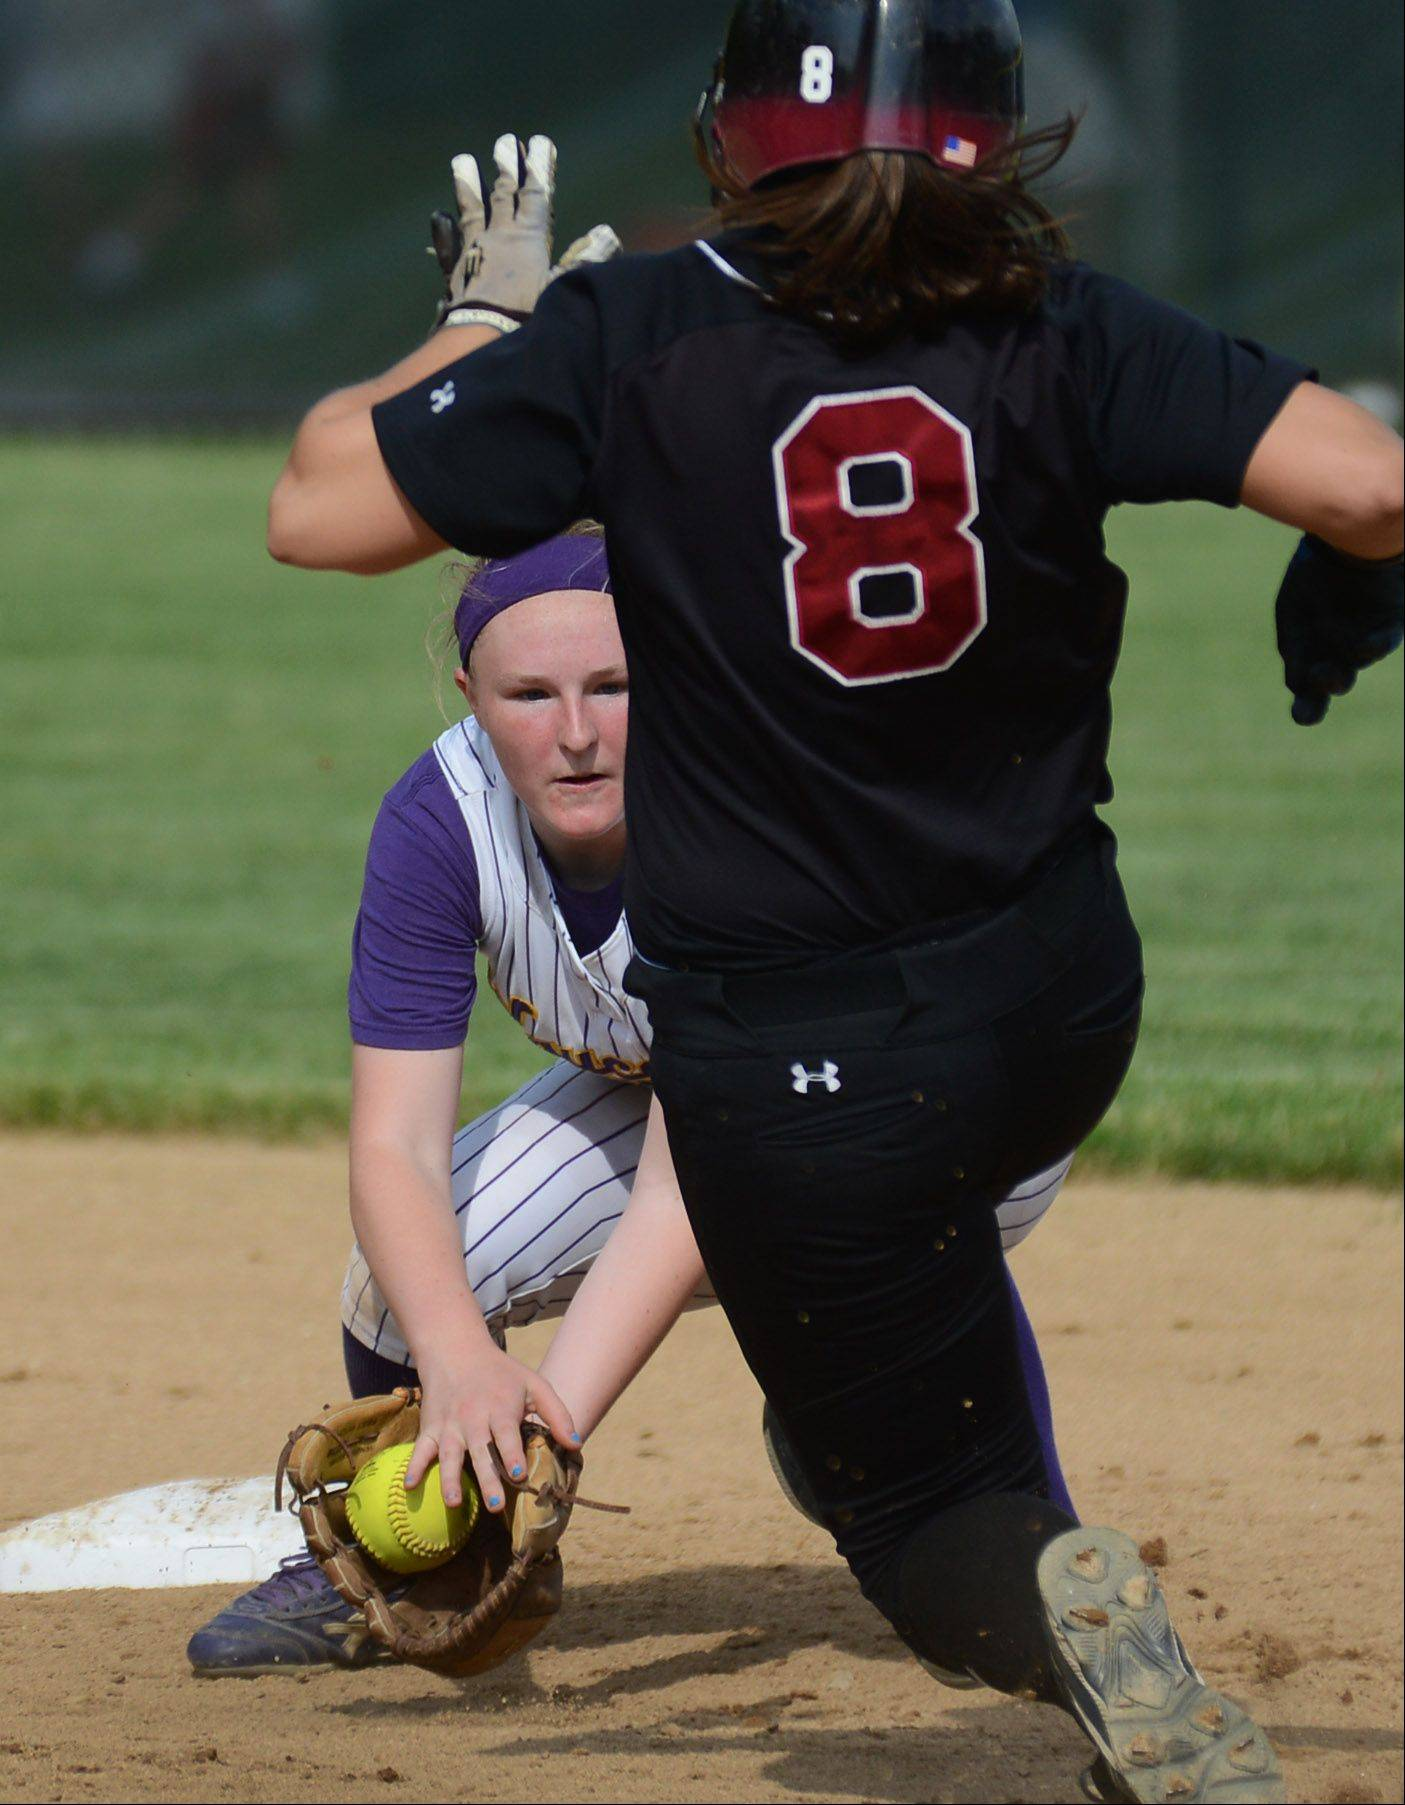 Wauconda shortstop Lauren Nee gets ready to tag Antioch's Kaylene Ressler as she heads into second base during Wednesday's Class 3A sectional semifinal game in Grayslake. Nee dropped the ball; Ressler was safe.